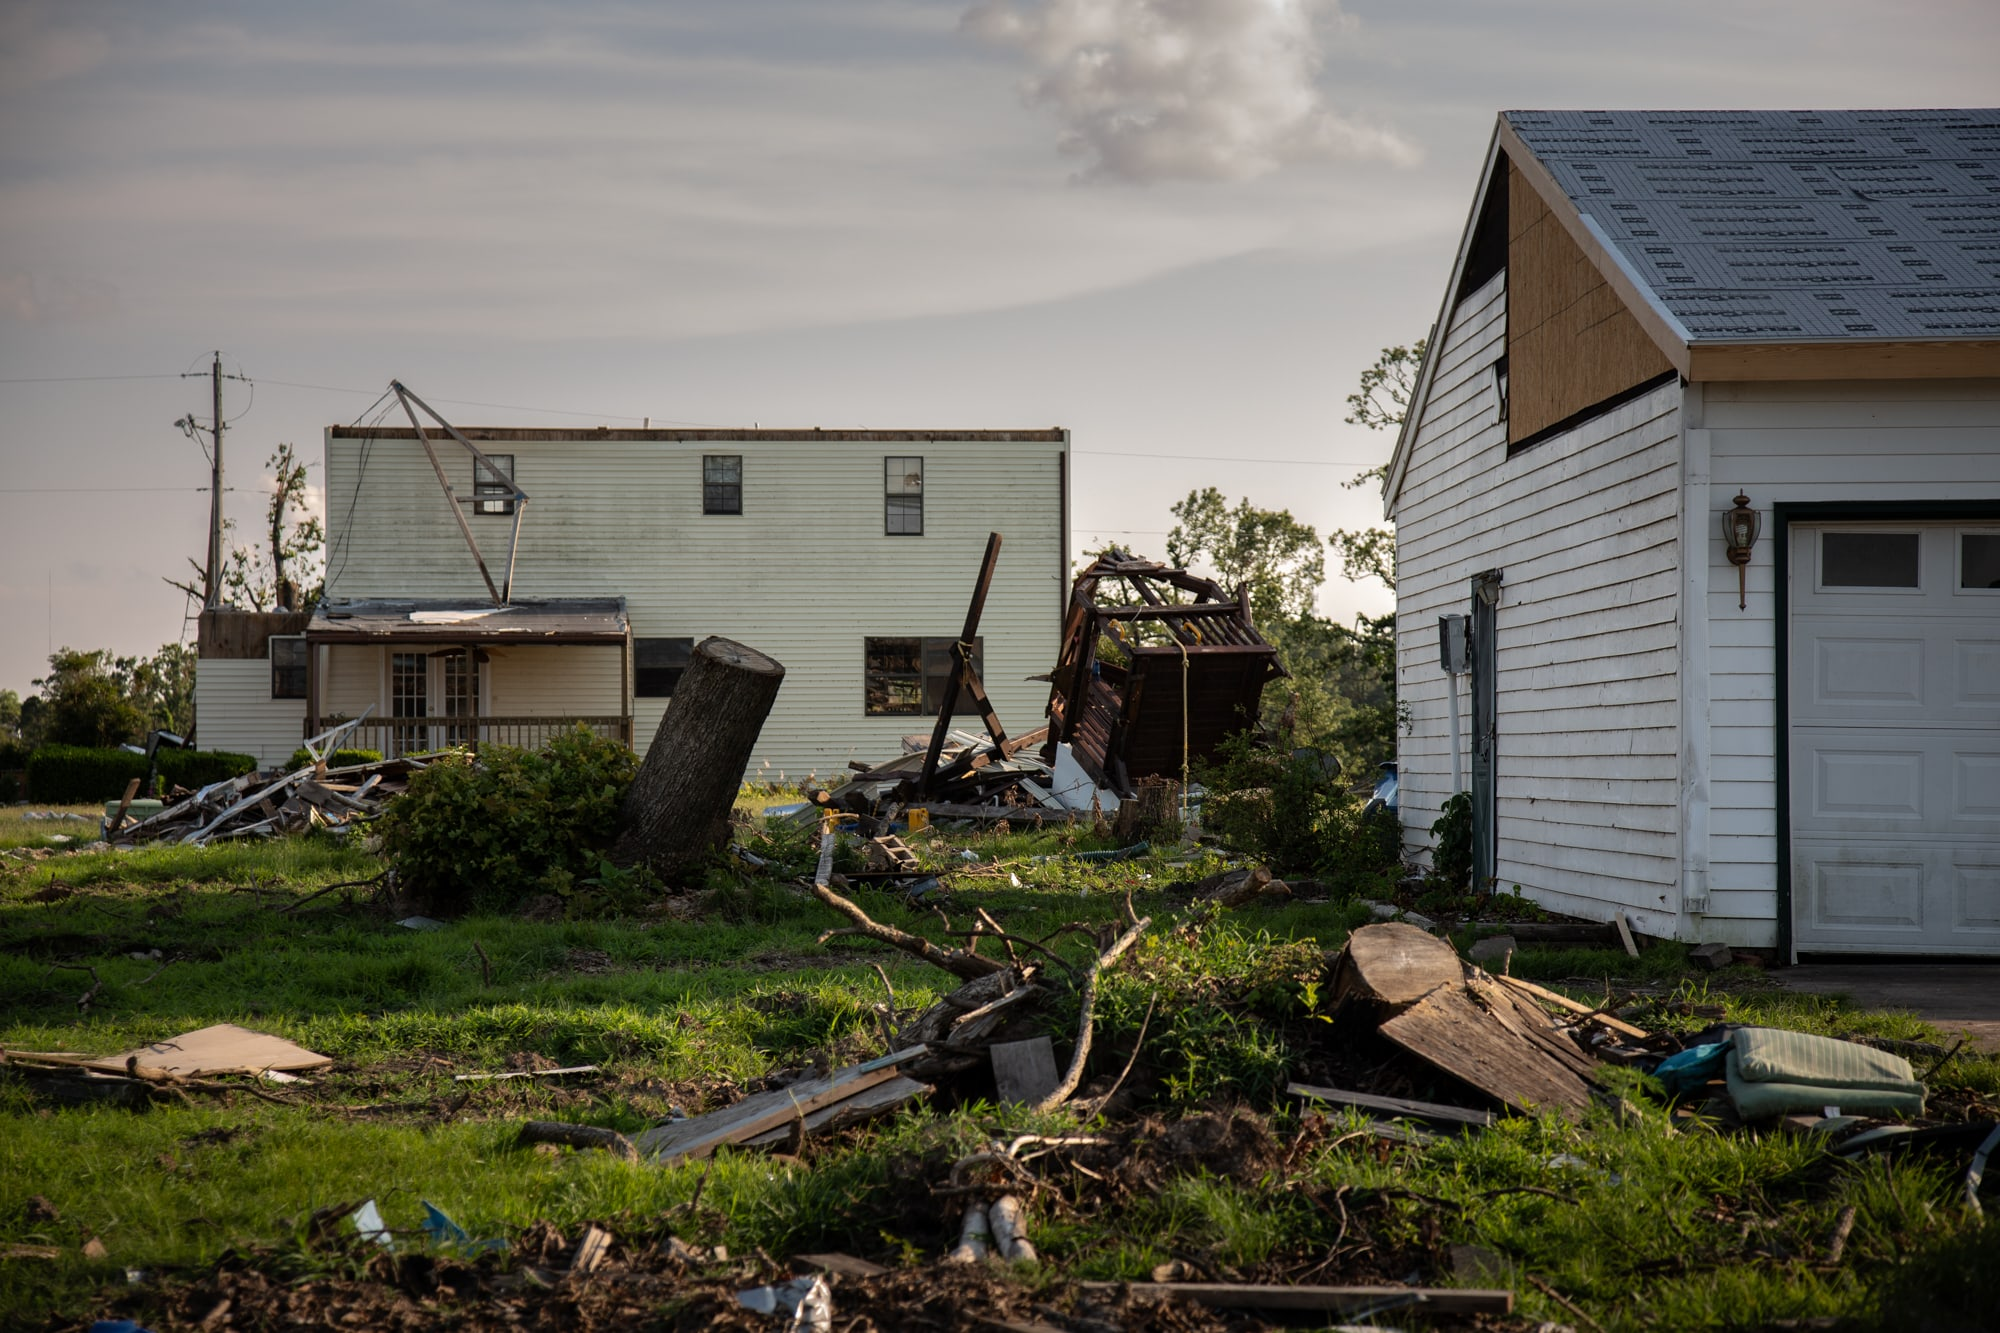 Exactly eight years after an EF5 tornado tore through Joplin, Missouri – killing 161 people and destroying a third of the city's homes – a twister hit Carl Junction, just north of Joplin, on May 22, 2019. (Brigette Waltermire/News21)